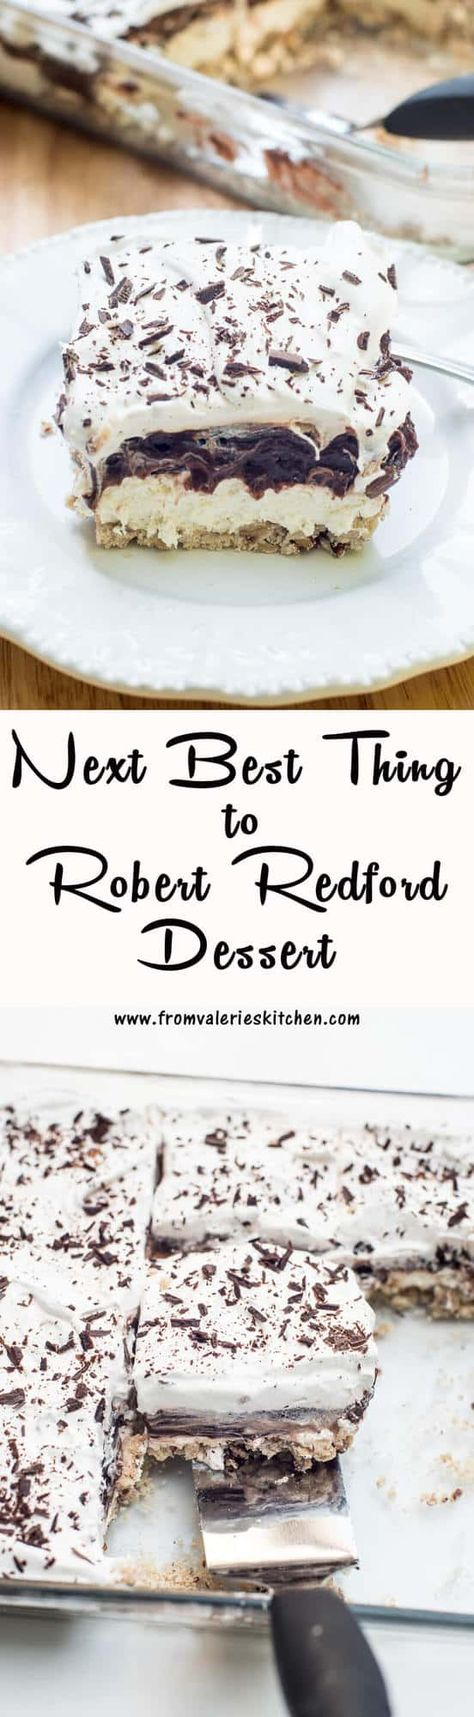 The Next Best Thing to Robert Redford Dessert is full of layers of creamy, chocolatygoodness on top of a pecan shortbread crust. This throwback to the 70's dessertis a fun choice for parties and potlucks. #robertredforddessert #easydesserts #potluckrecipes